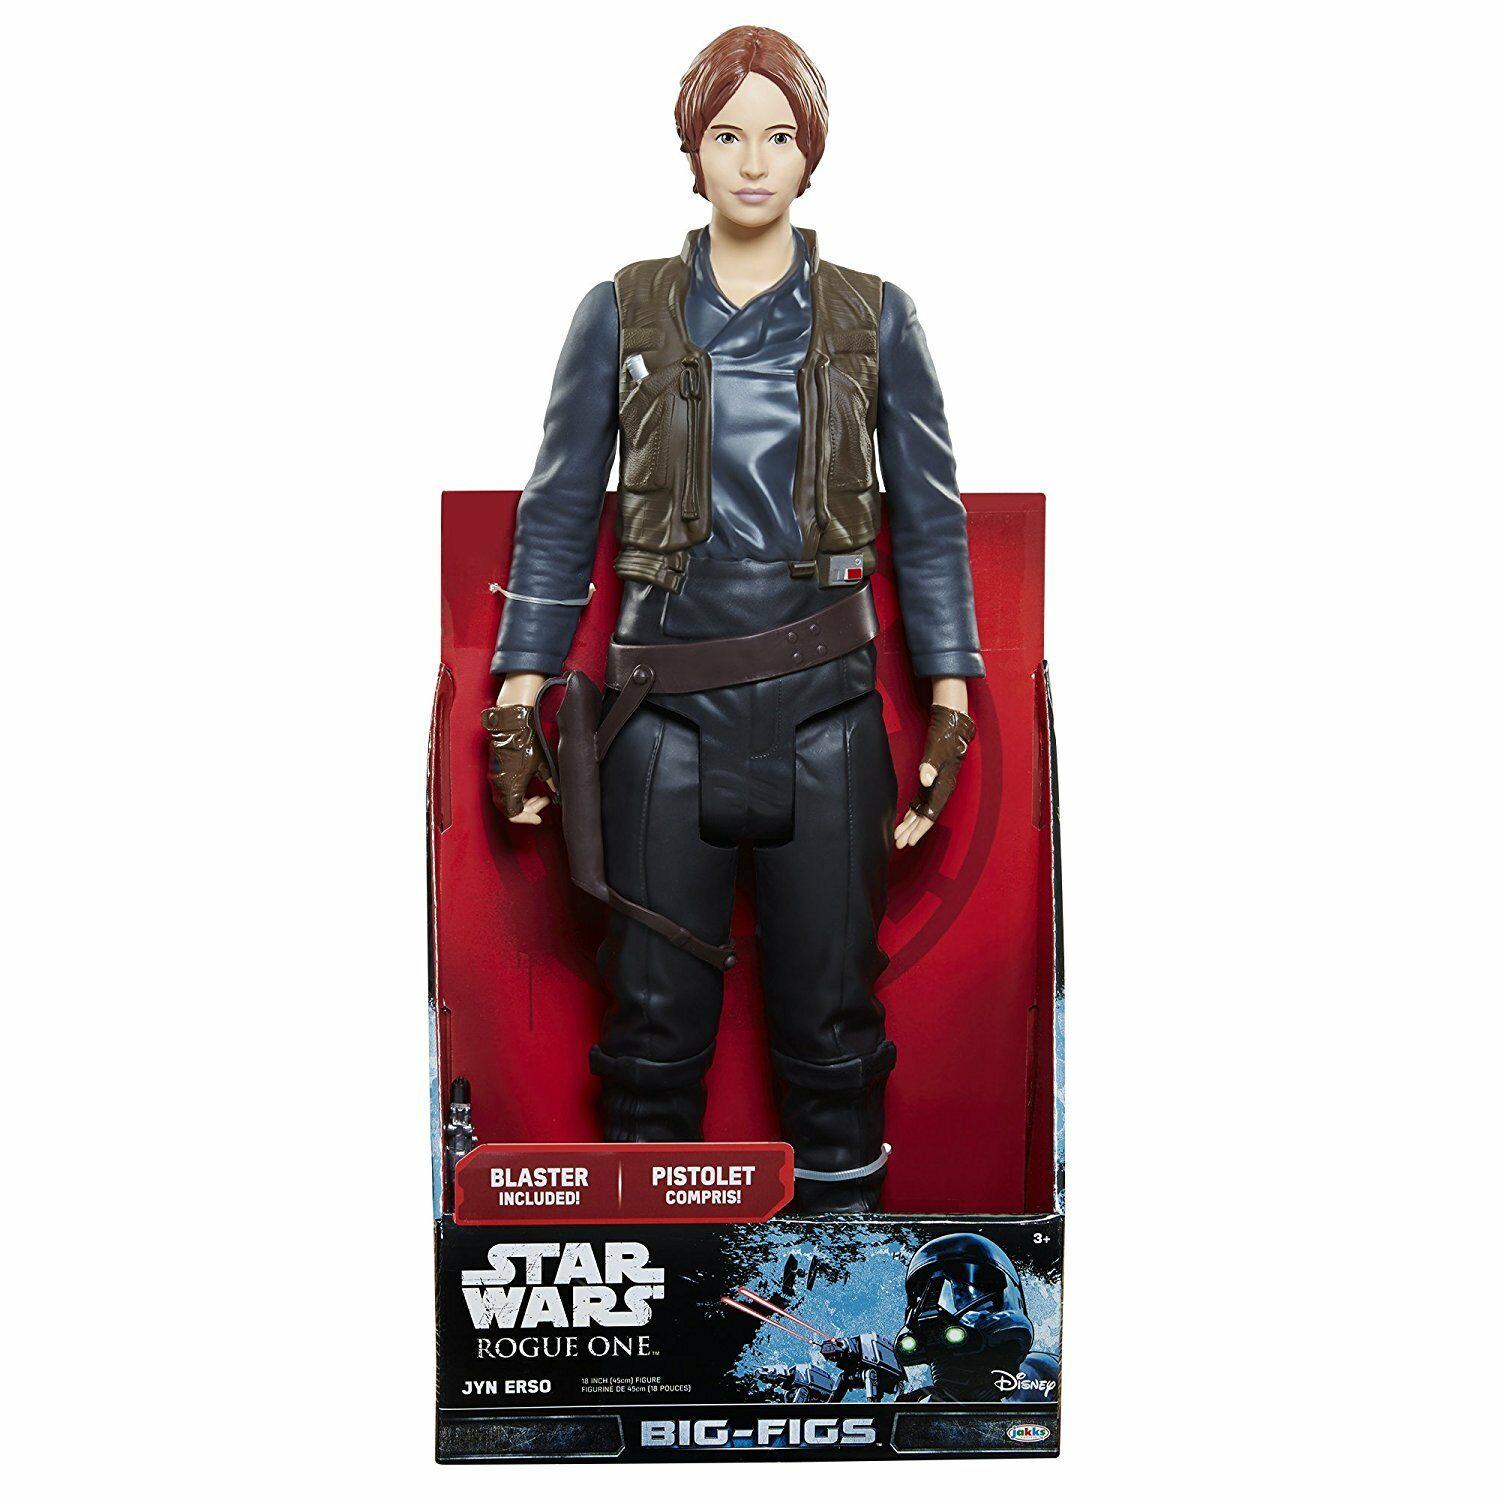 Star Wars Rogue 1 BIG FIGS Jyn Erso 20 inch SCALE JAKKS PACIFIC new